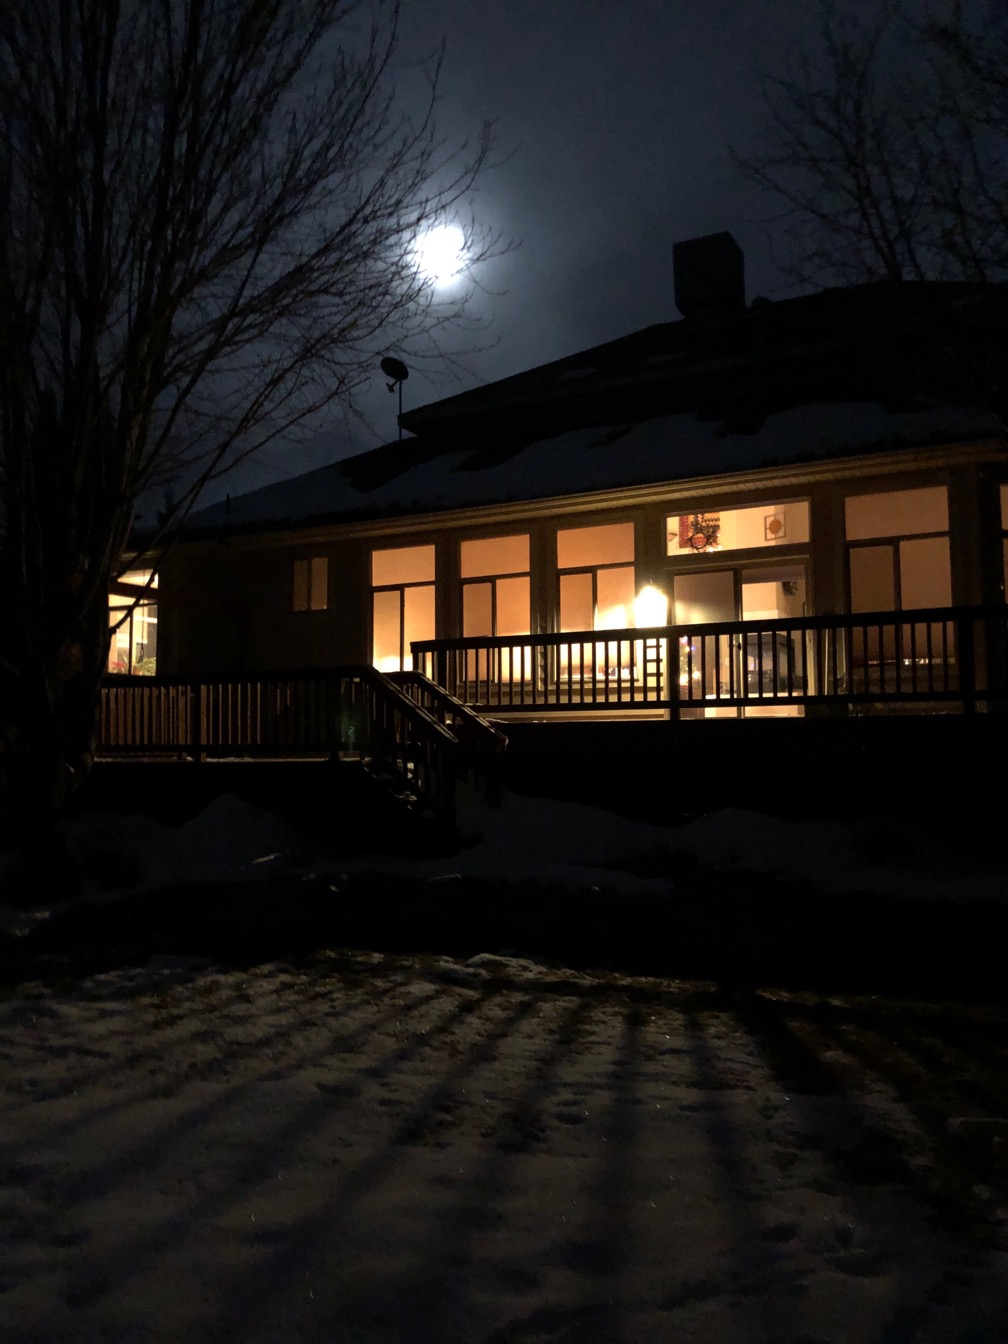 Photo of a house with lights shining through the windows and the moon overhead.